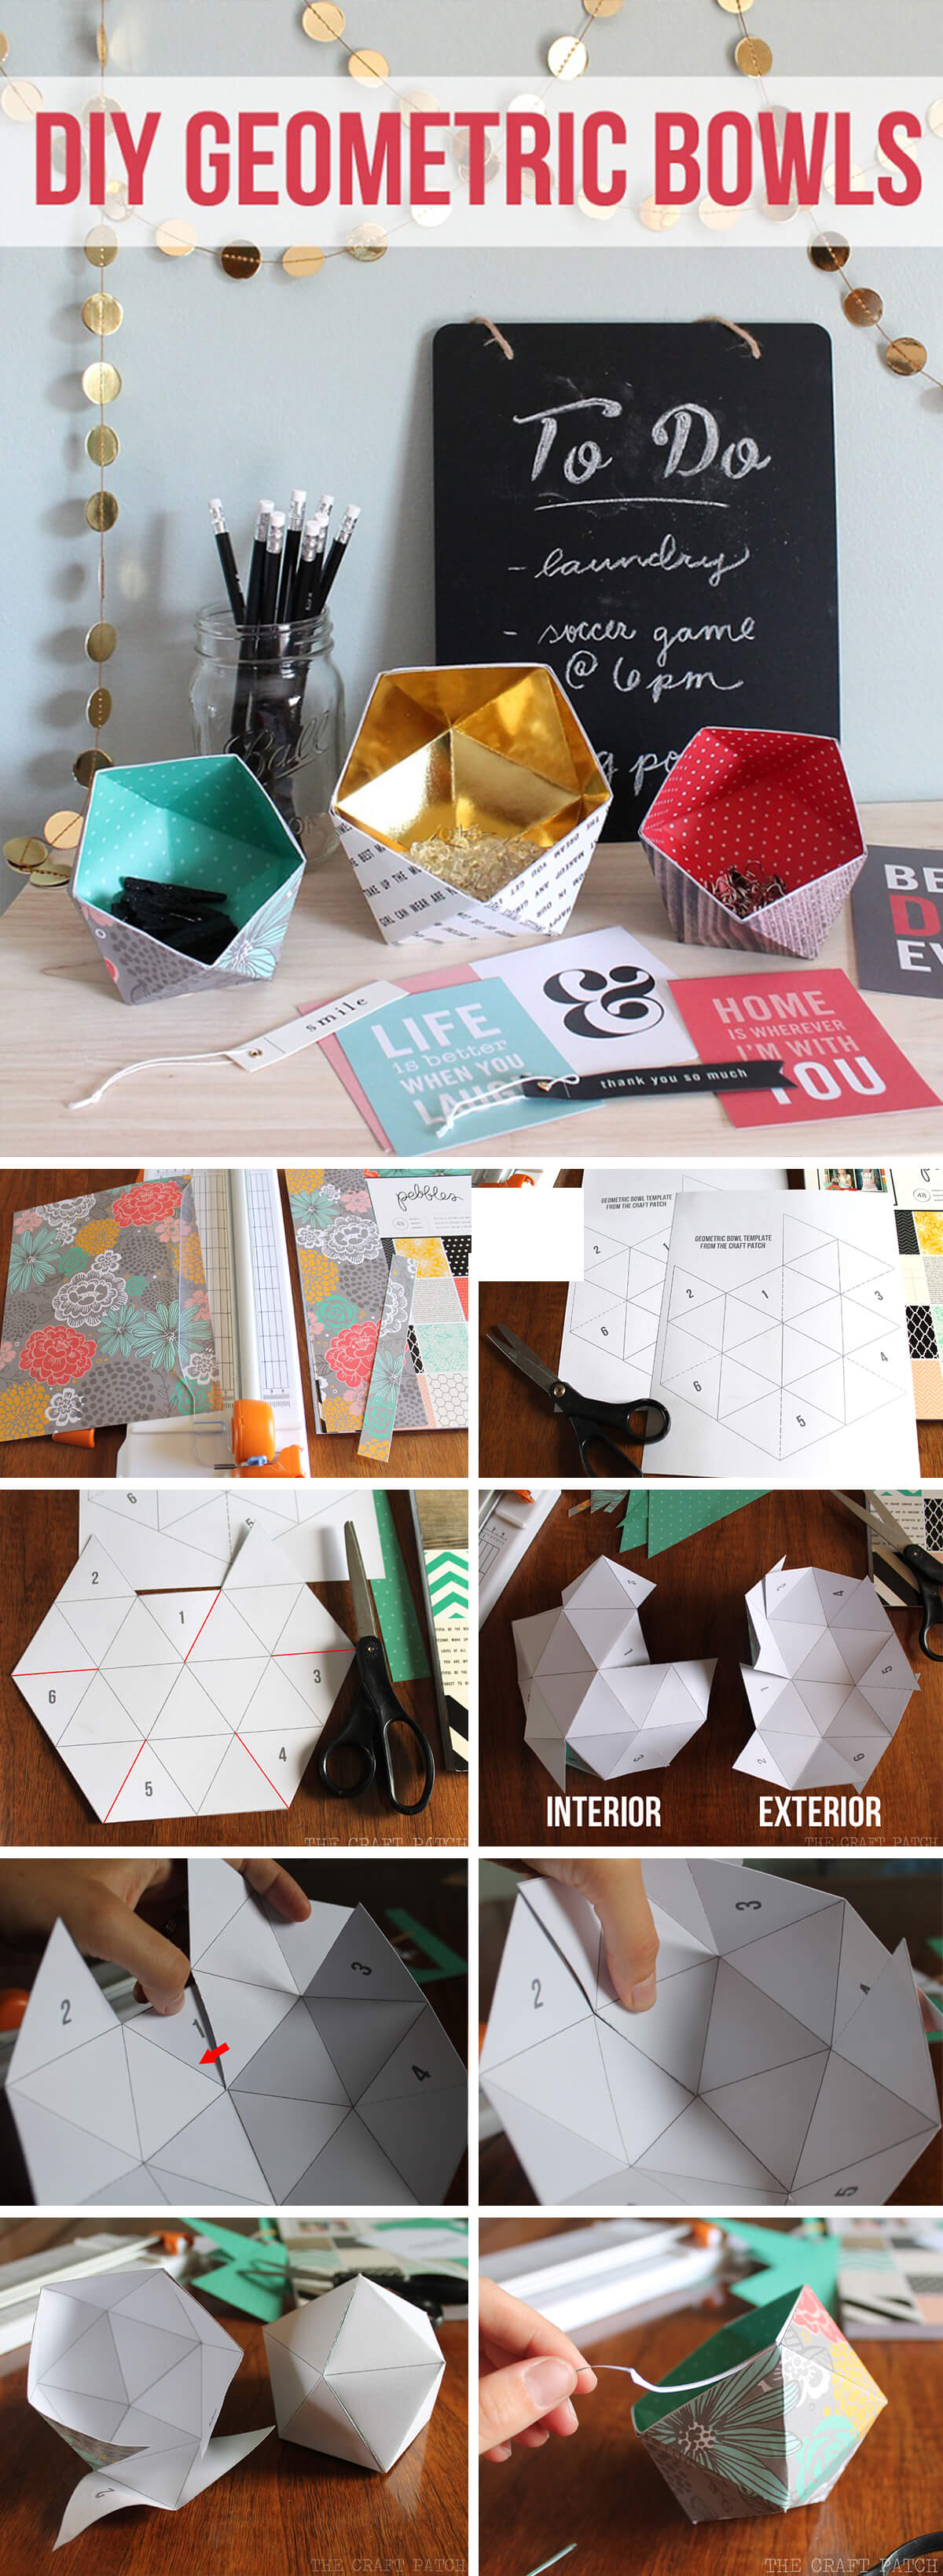 paper decor crafts ideas 2